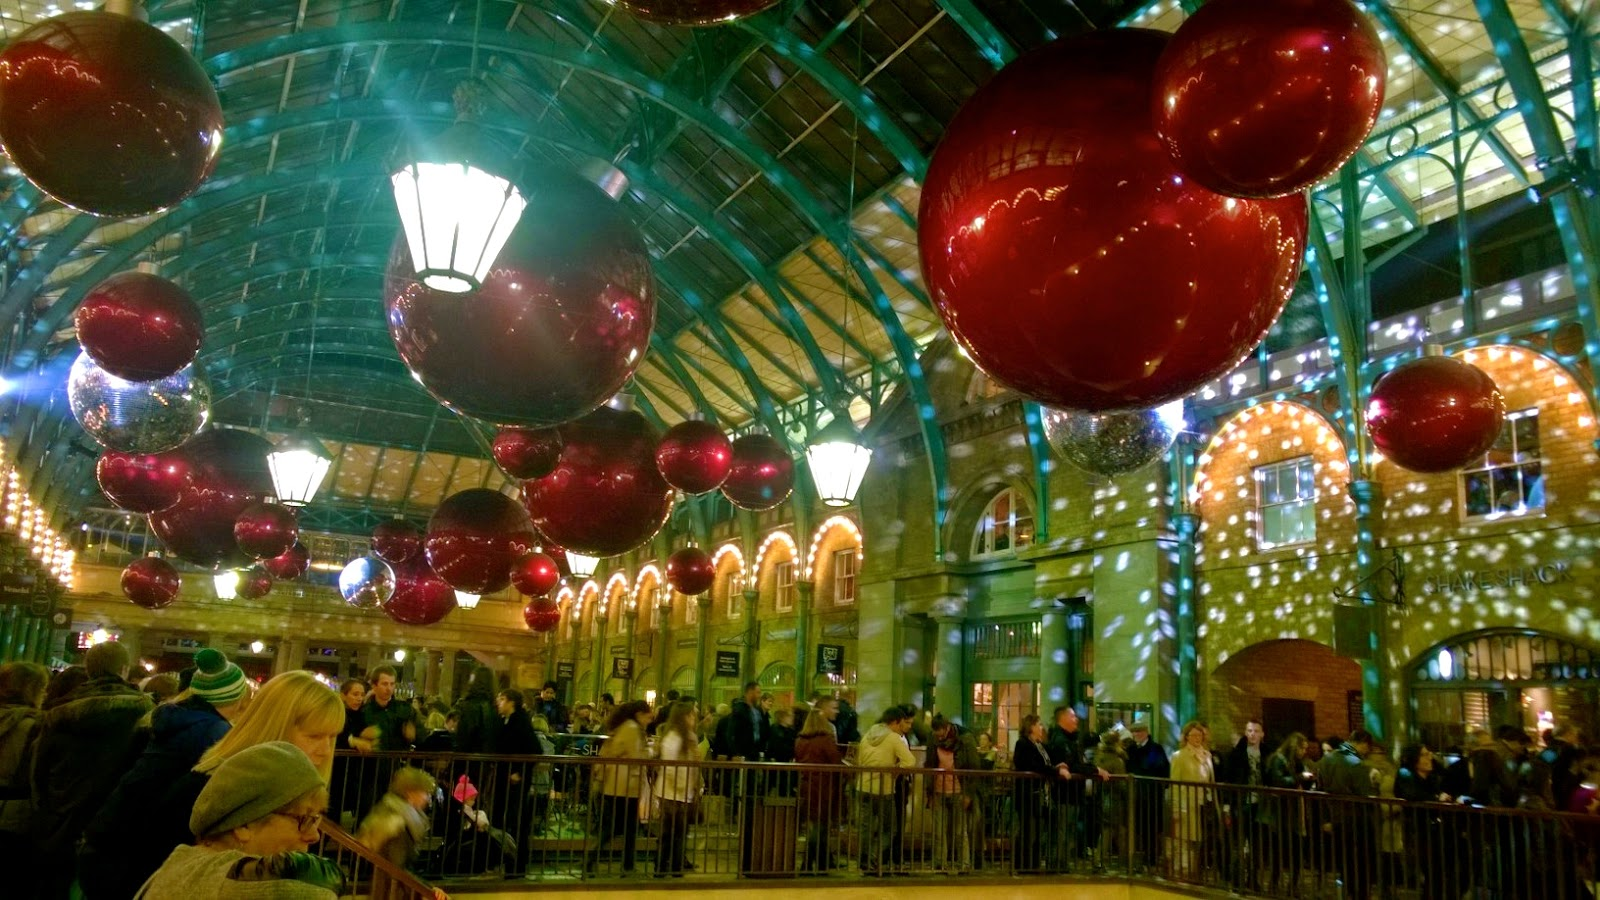 Large red bauble decorations at Covent Garden